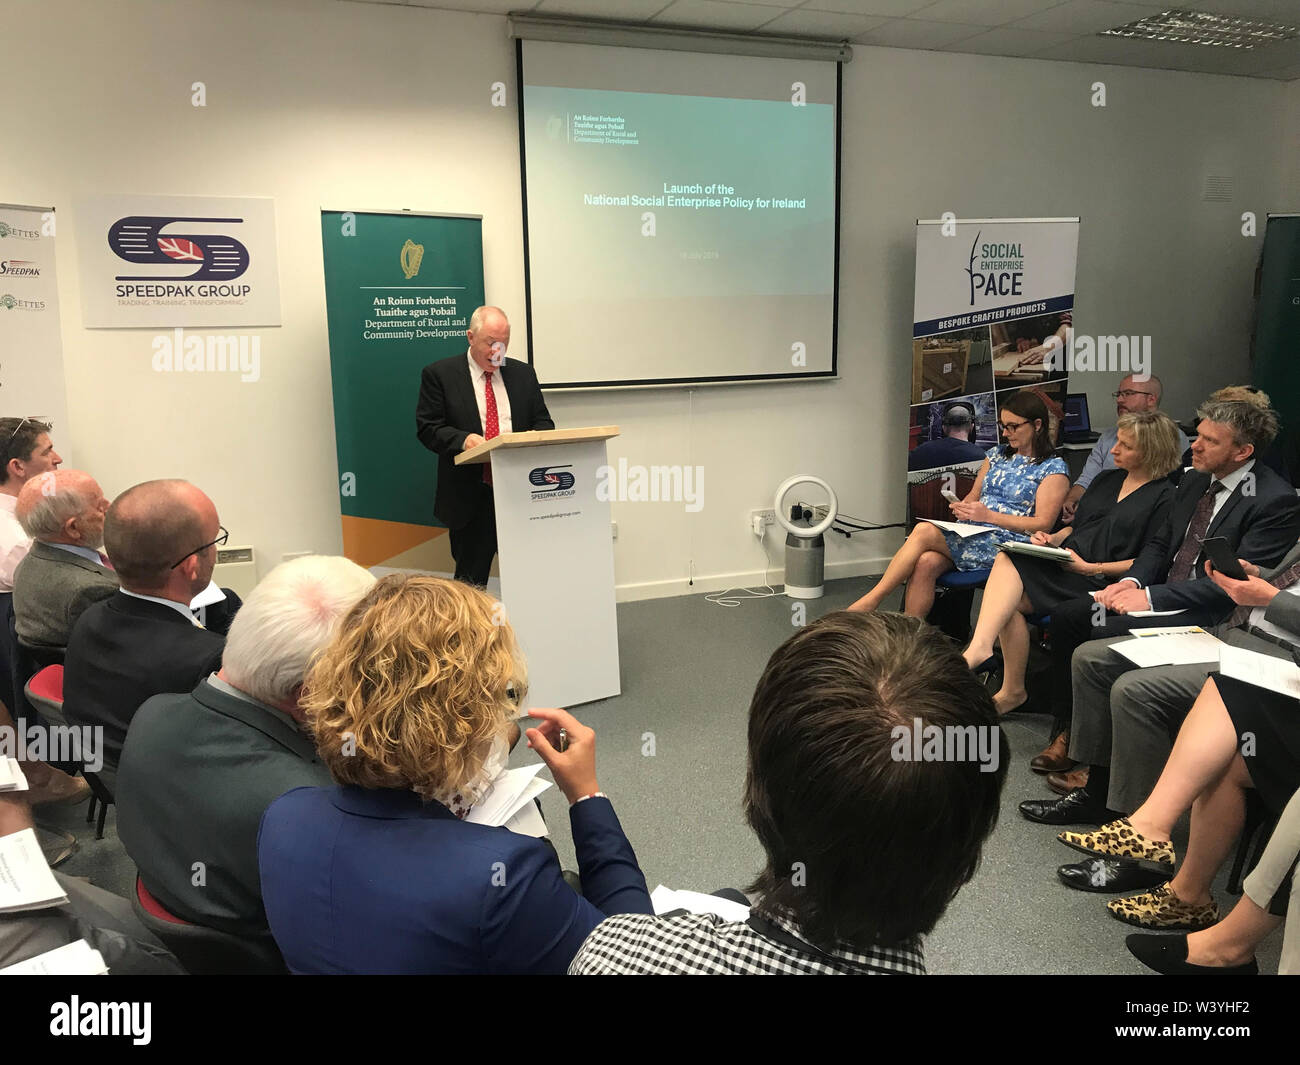 Rural and Community Development Minister Michael Ring discussing the Government's first-ever Social Enterprise Policy for Ireland. The policy was launched at Speedpak, a social enterprise in Coolock, north Dublin on Thursday. - Stock Image